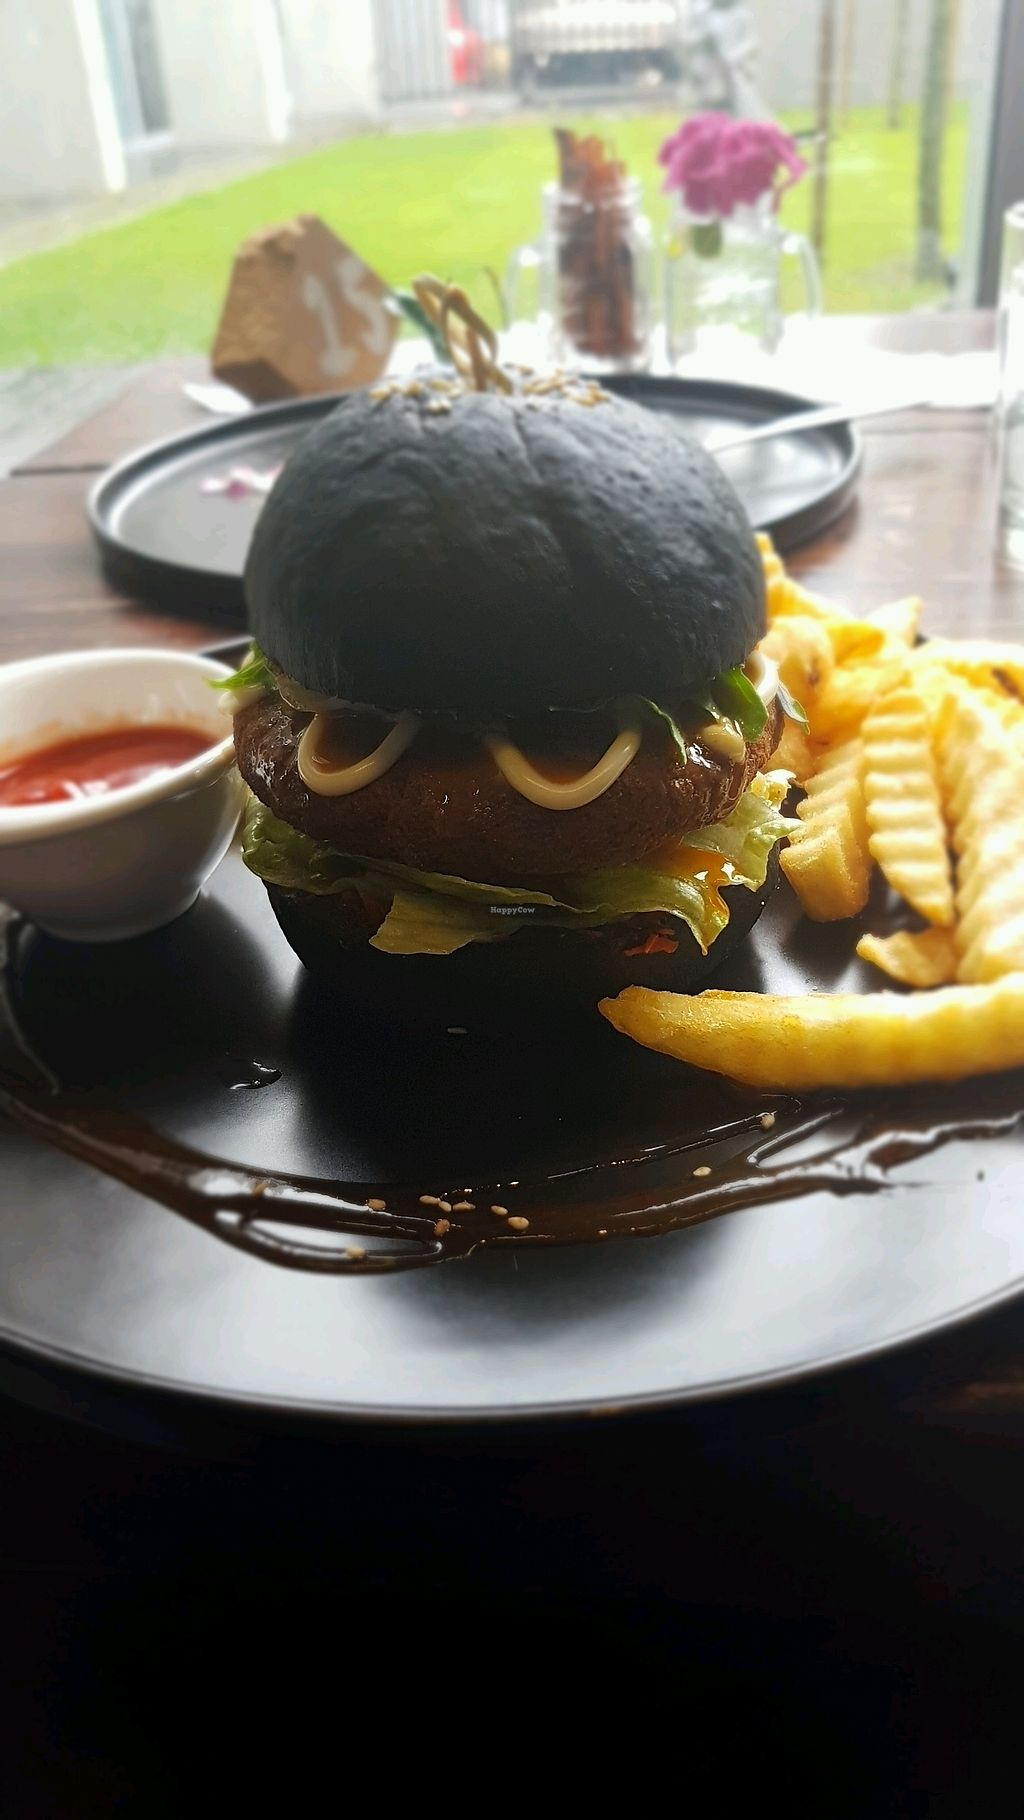 """Photo of Water Drop Vegetarian Cafe  by <a href=""""/members/profile/JuanRuas"""">JuanRuas</a> <br/>Chickpea burger  <br/> January 5, 2018  - <a href='/contact/abuse/image/11971/343391'>Report</a>"""